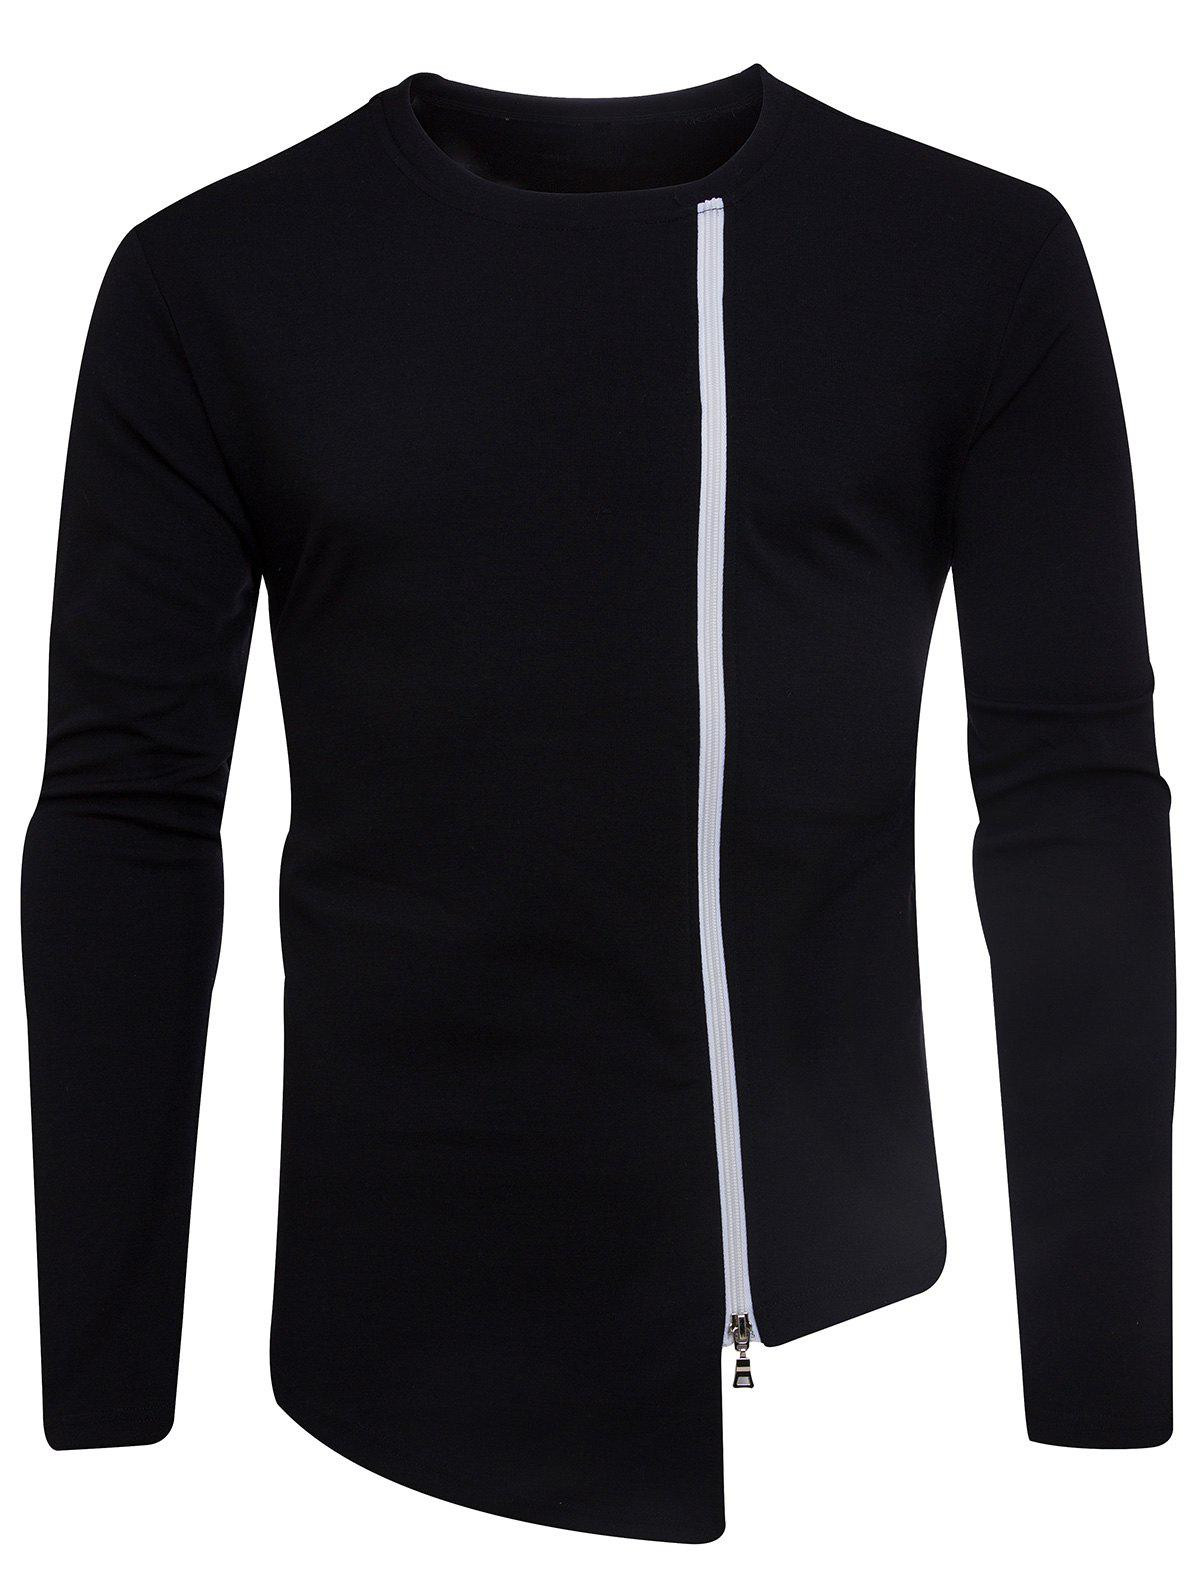 Unique Oblique Zip Up Asymmetric T-shirt